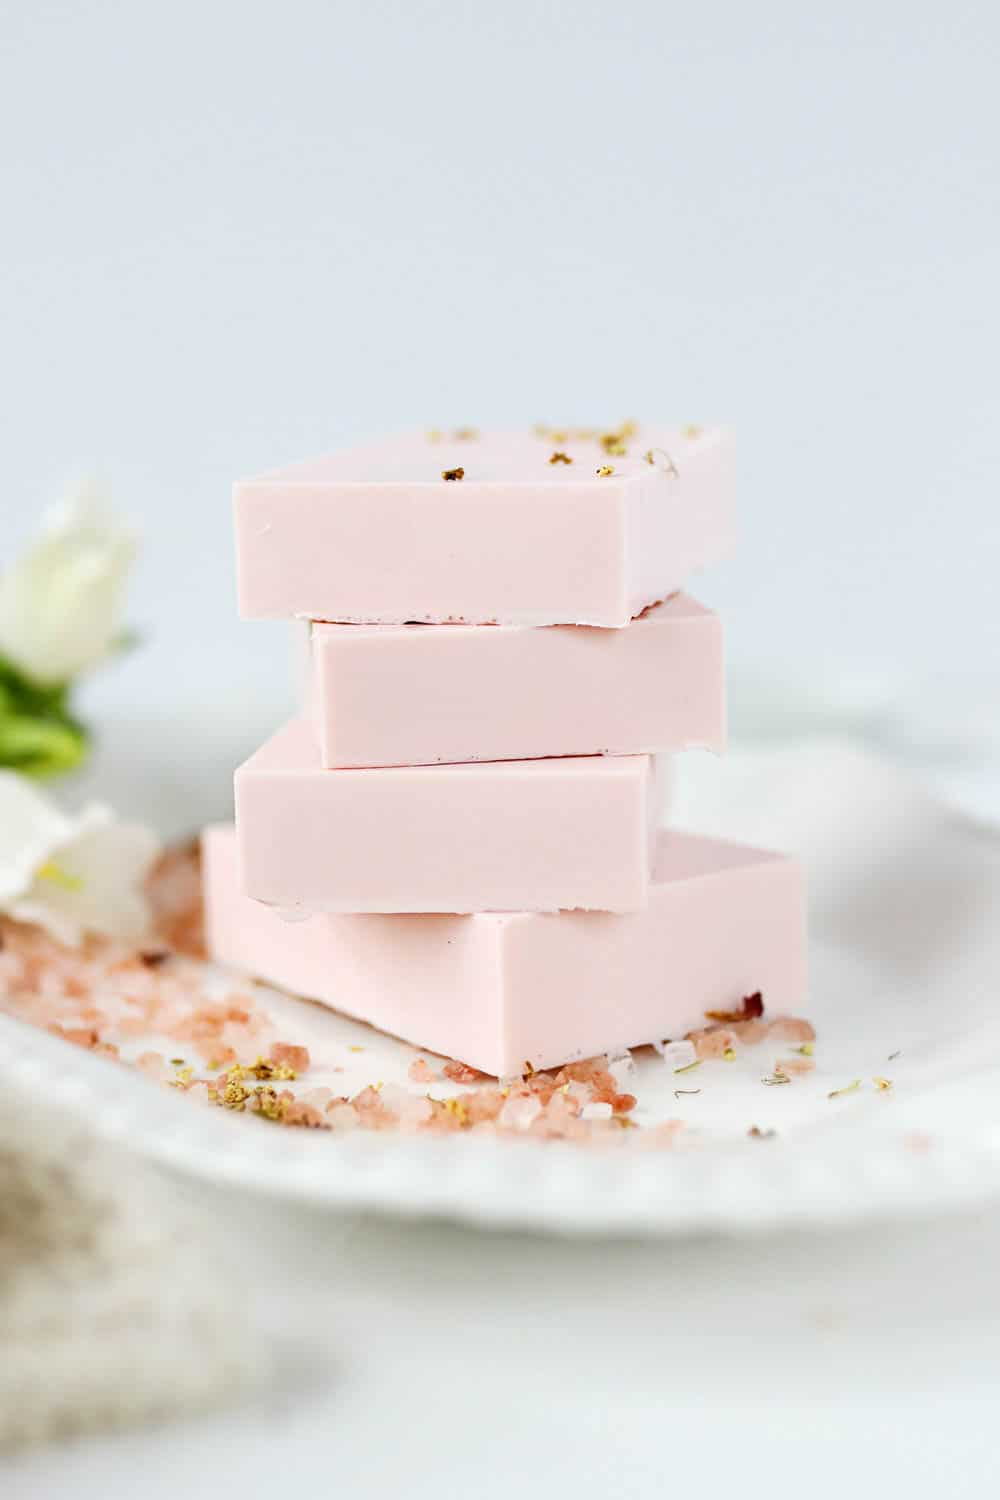 Healing Calamine Soap for Sensitive Skin (DIY Lush Fresh Farmacy!)